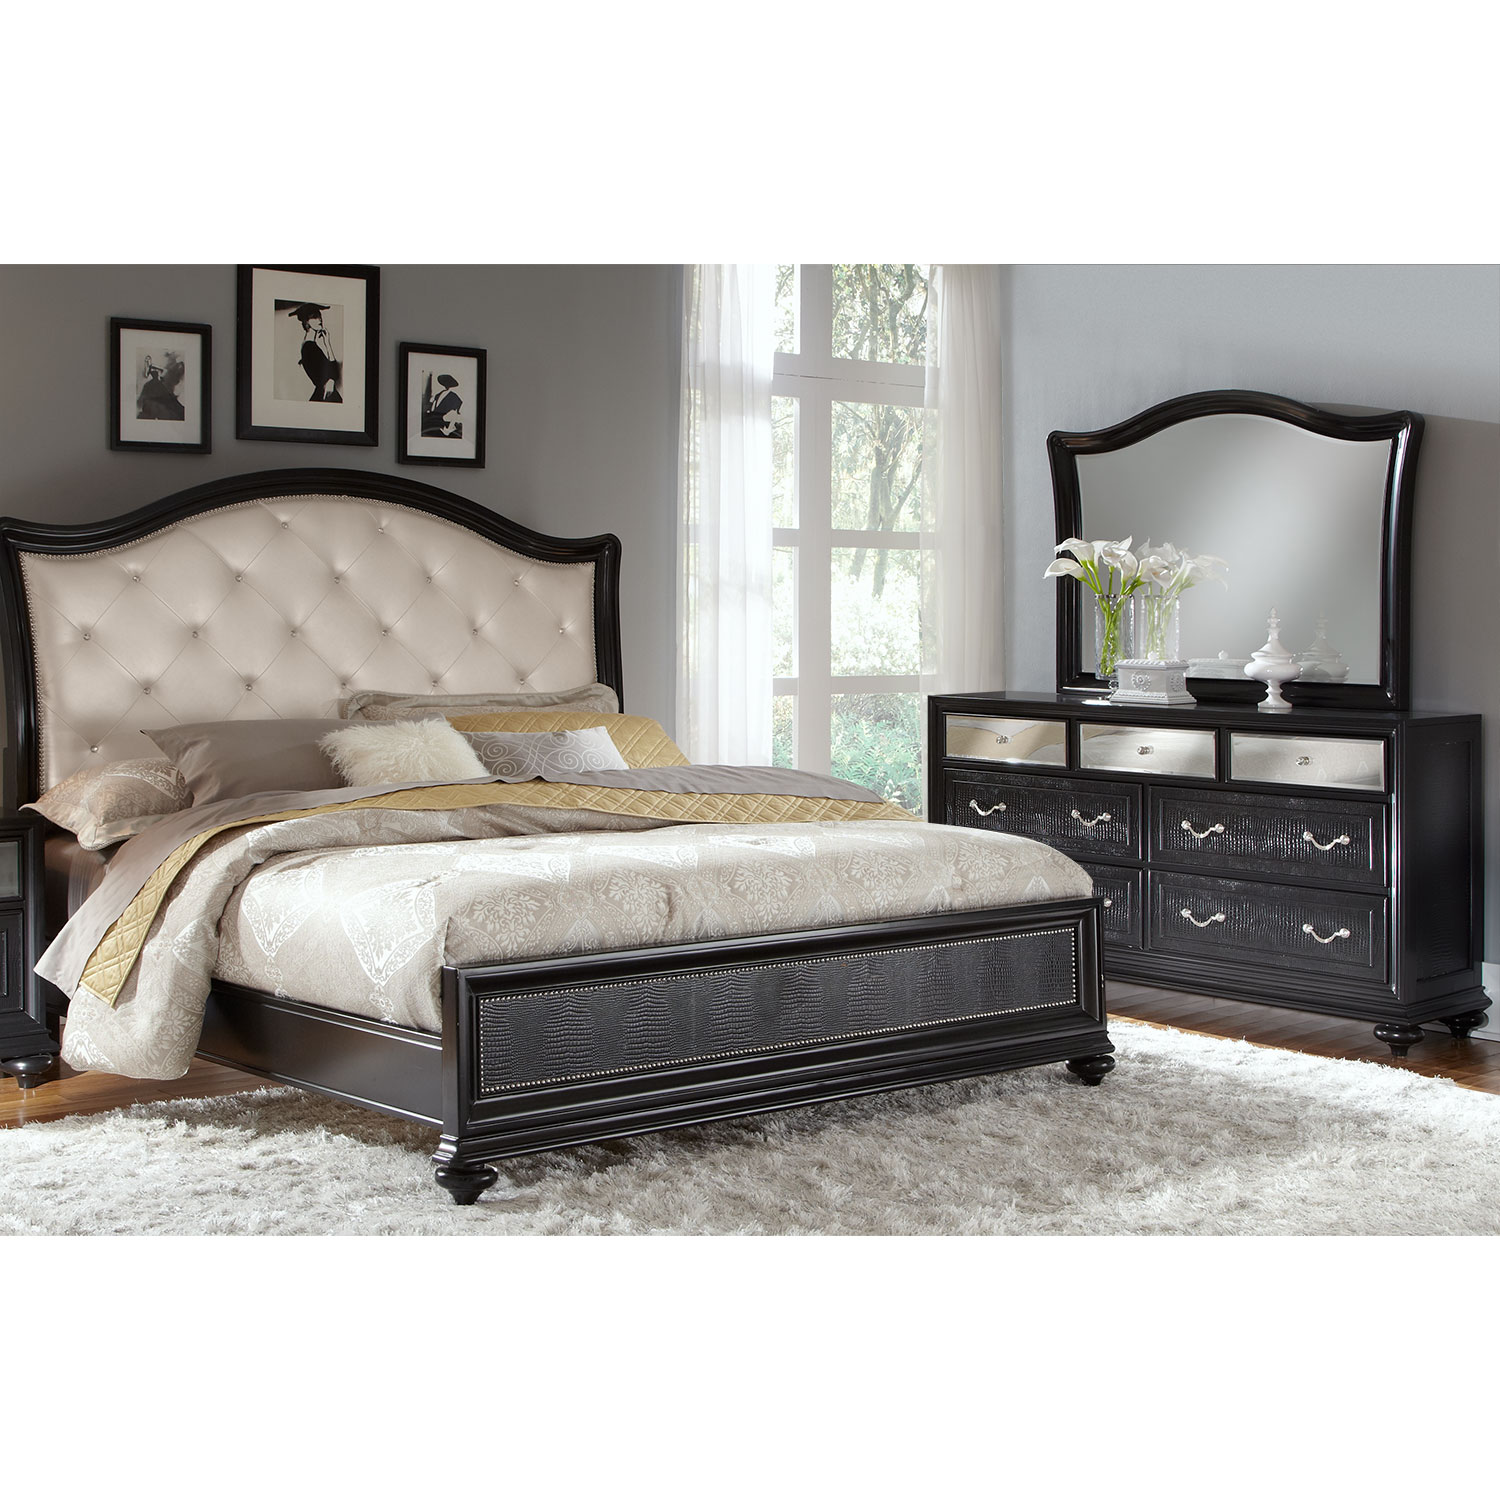 black bedroom sets king. Marilyn 5 Piece King Bedroom Set  Ebony by Pulaski American Signature